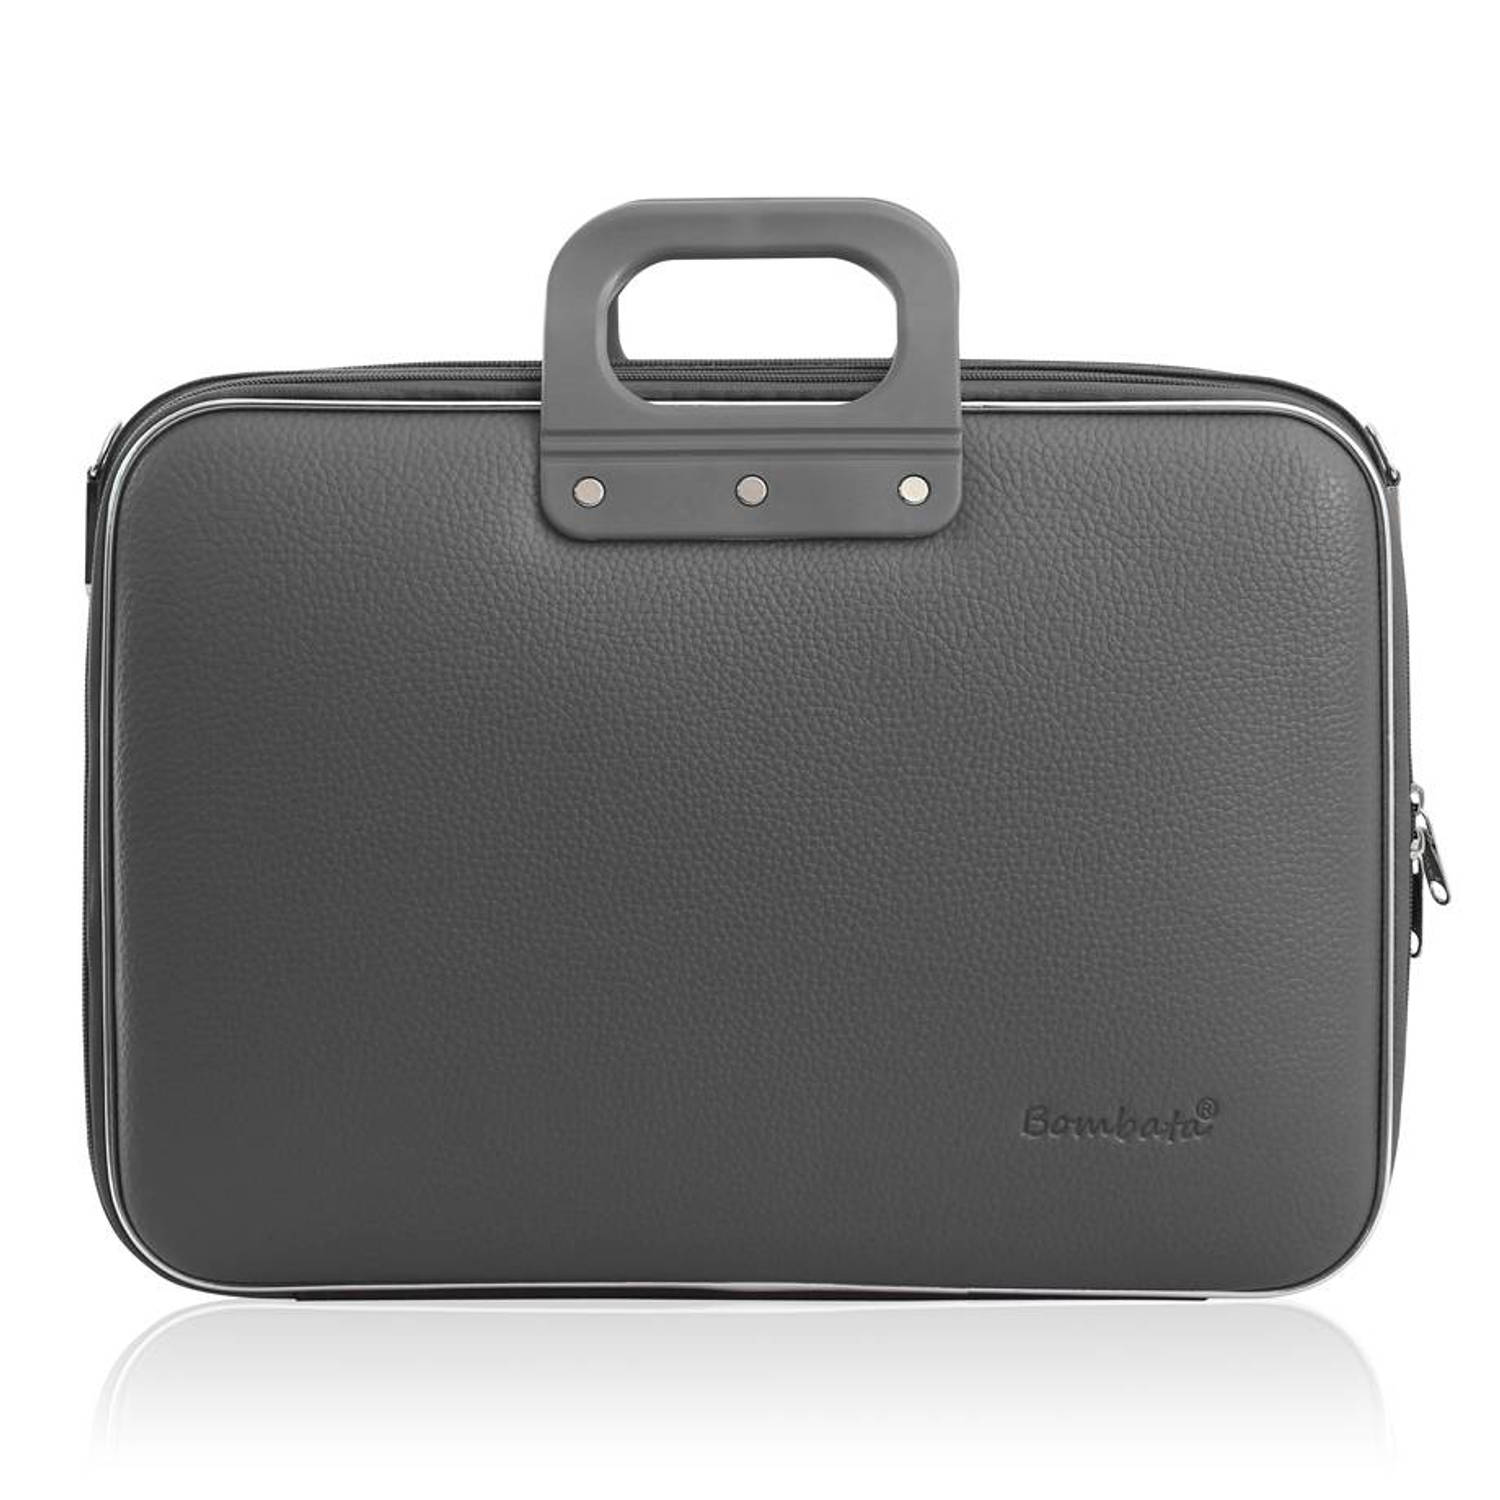 Bombata 15 inch Business Laptoptas Houtskool grijs